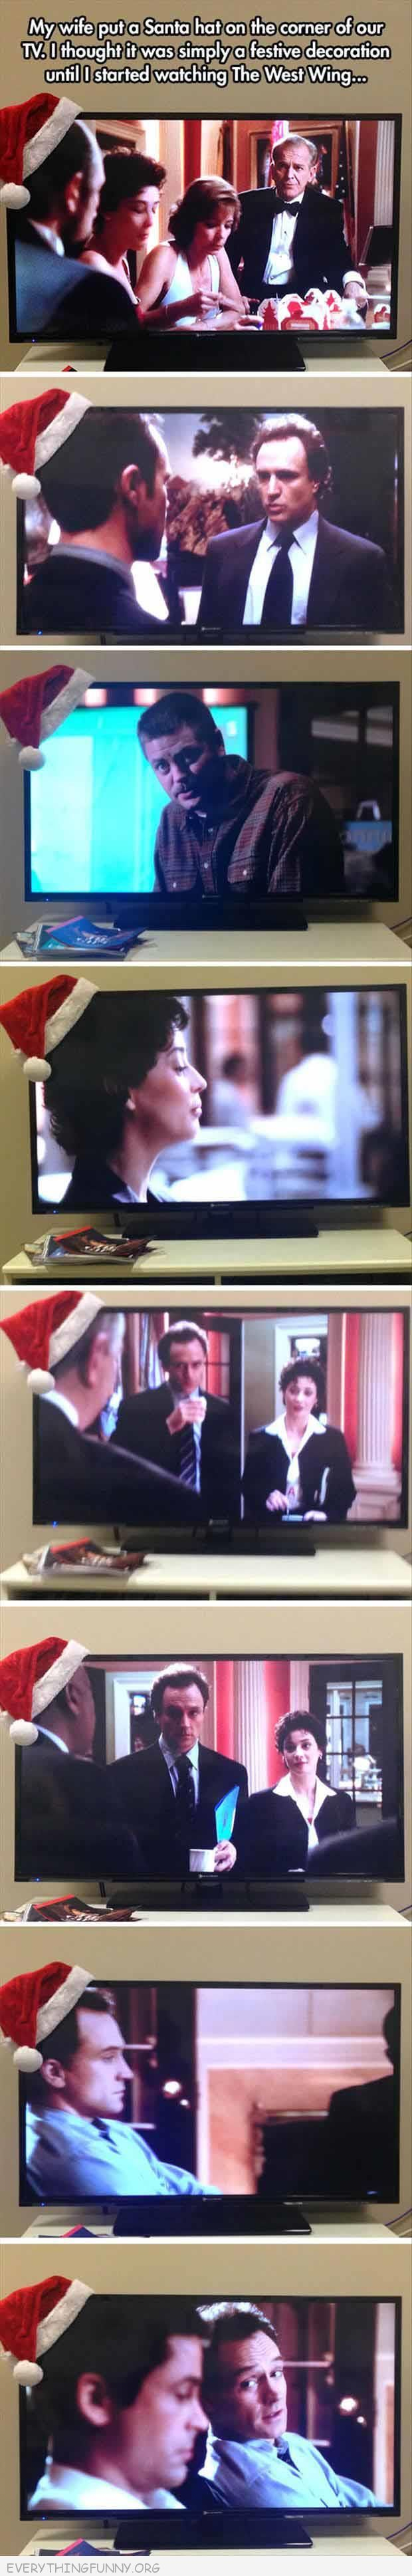 funny wie put santa hat corner tv funnier than you would think